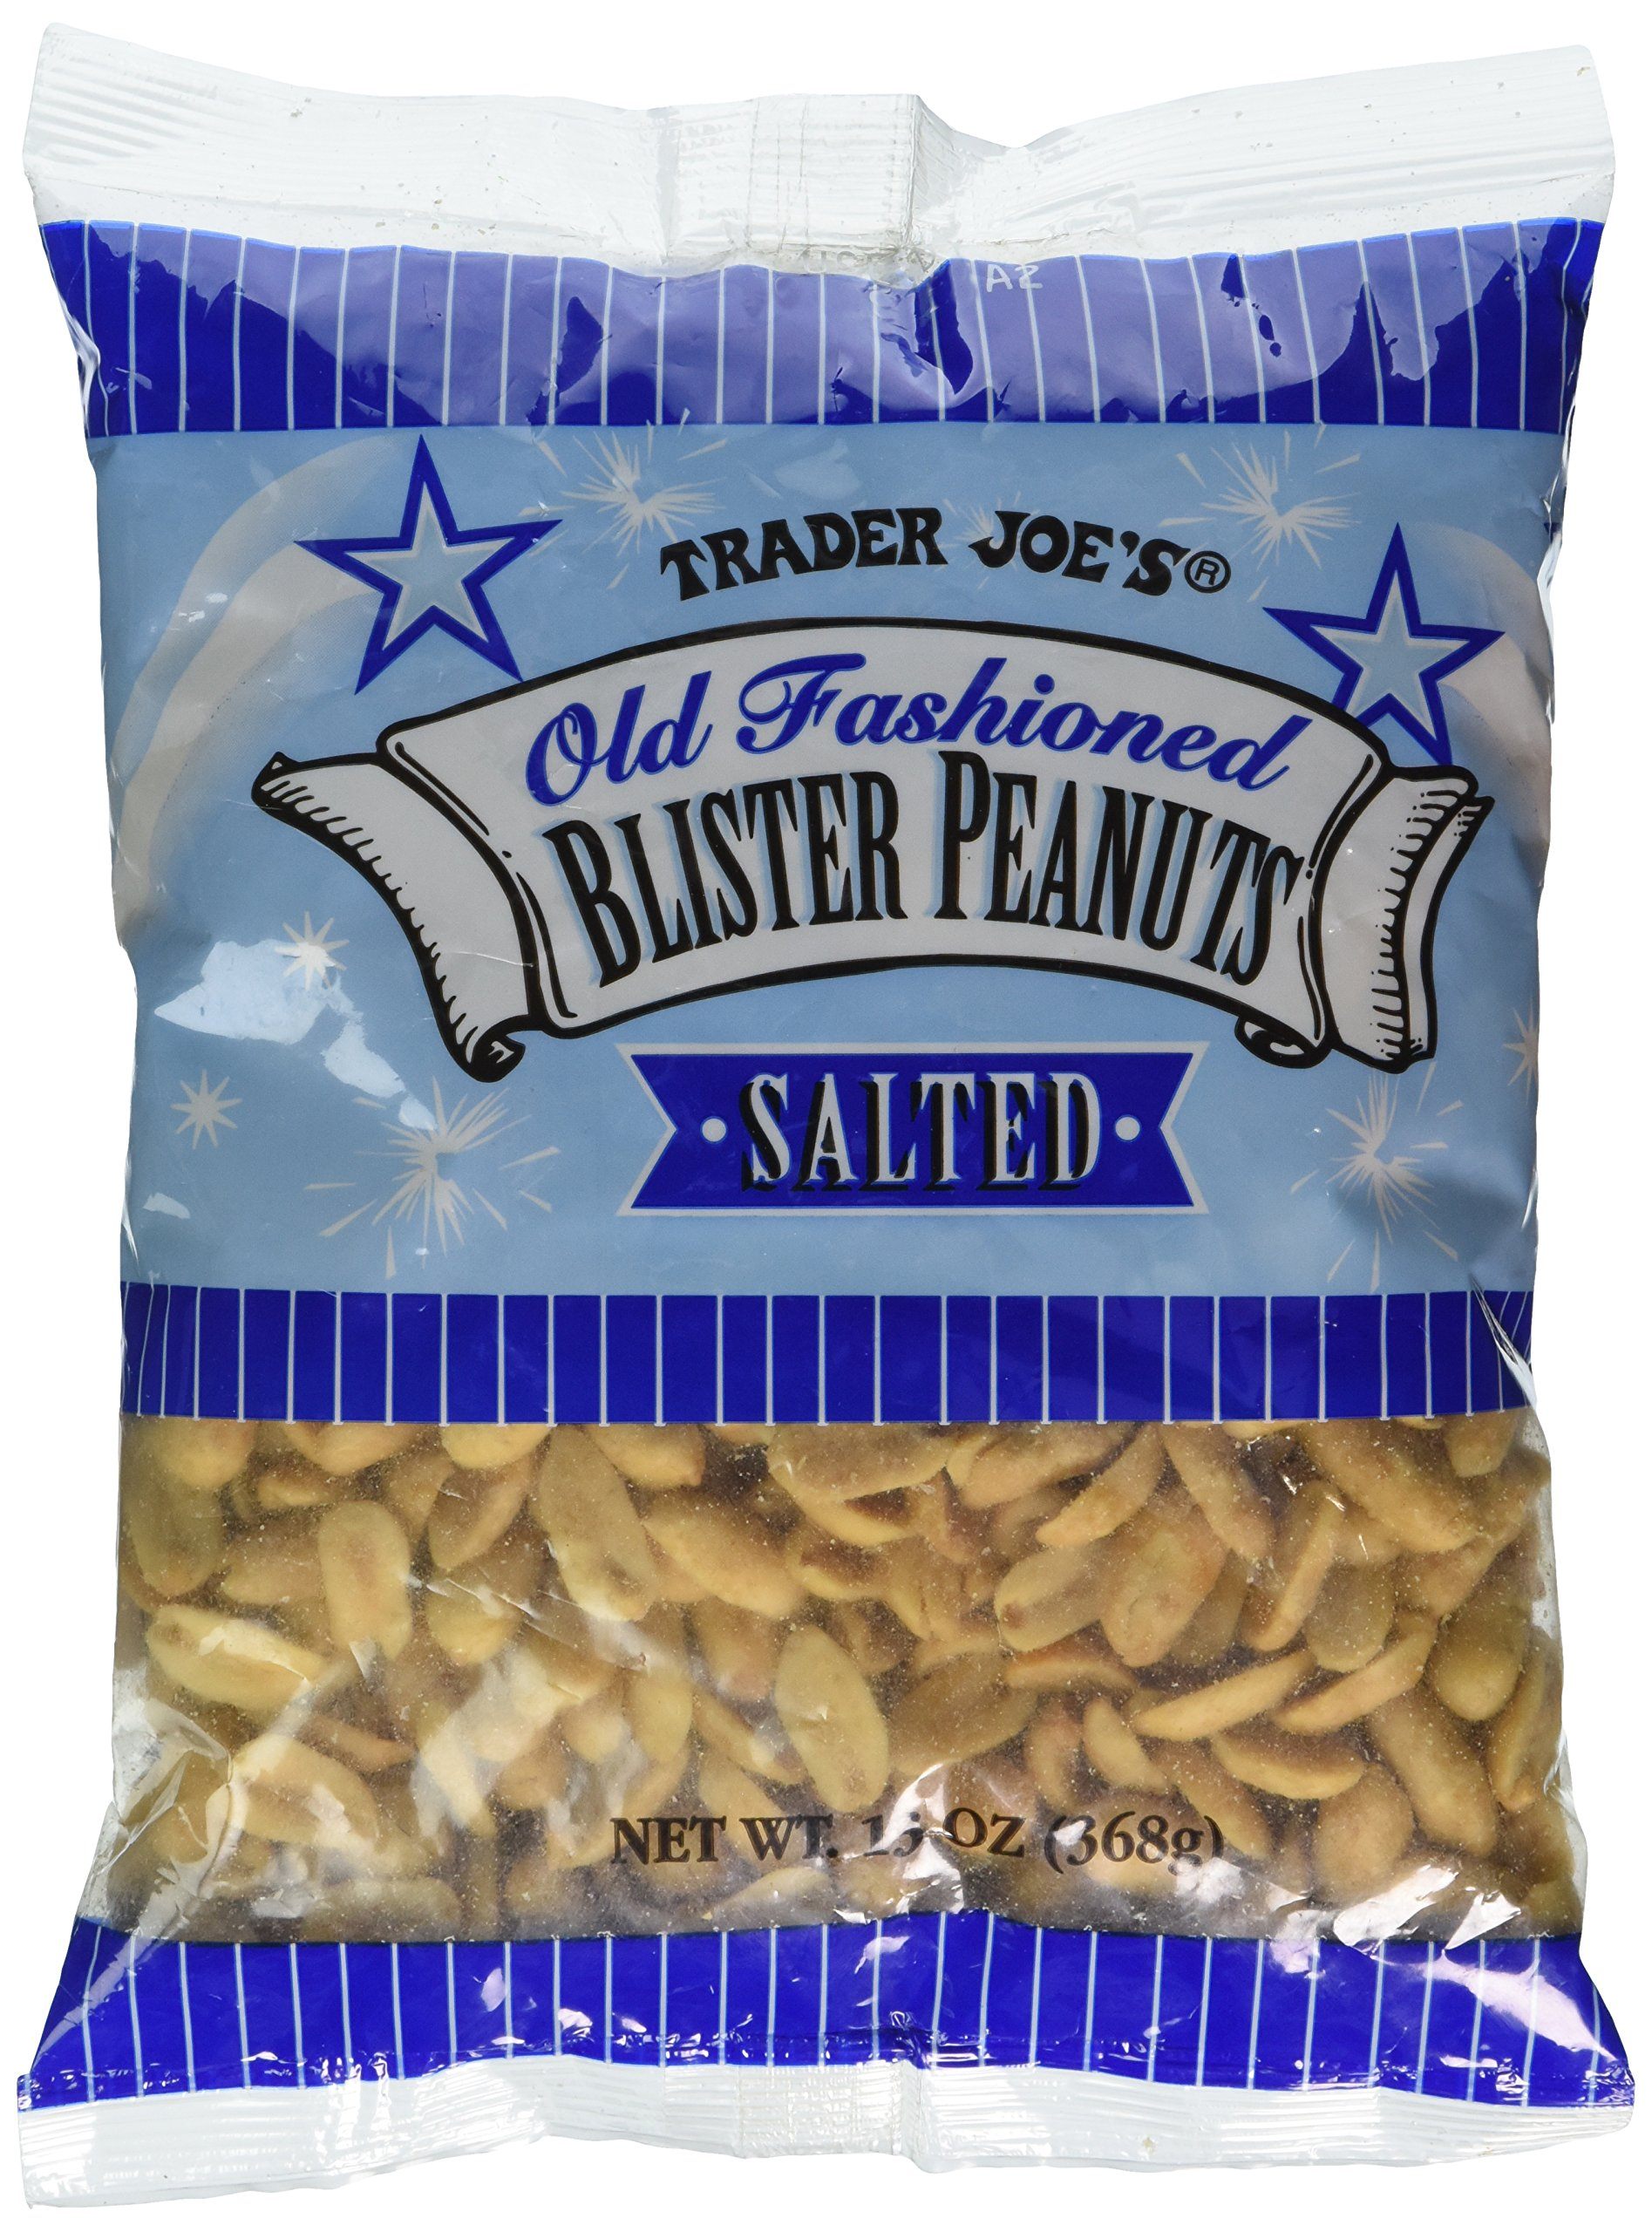 Trader Joe'S Old Fashioned Blister Peanuts - Salted